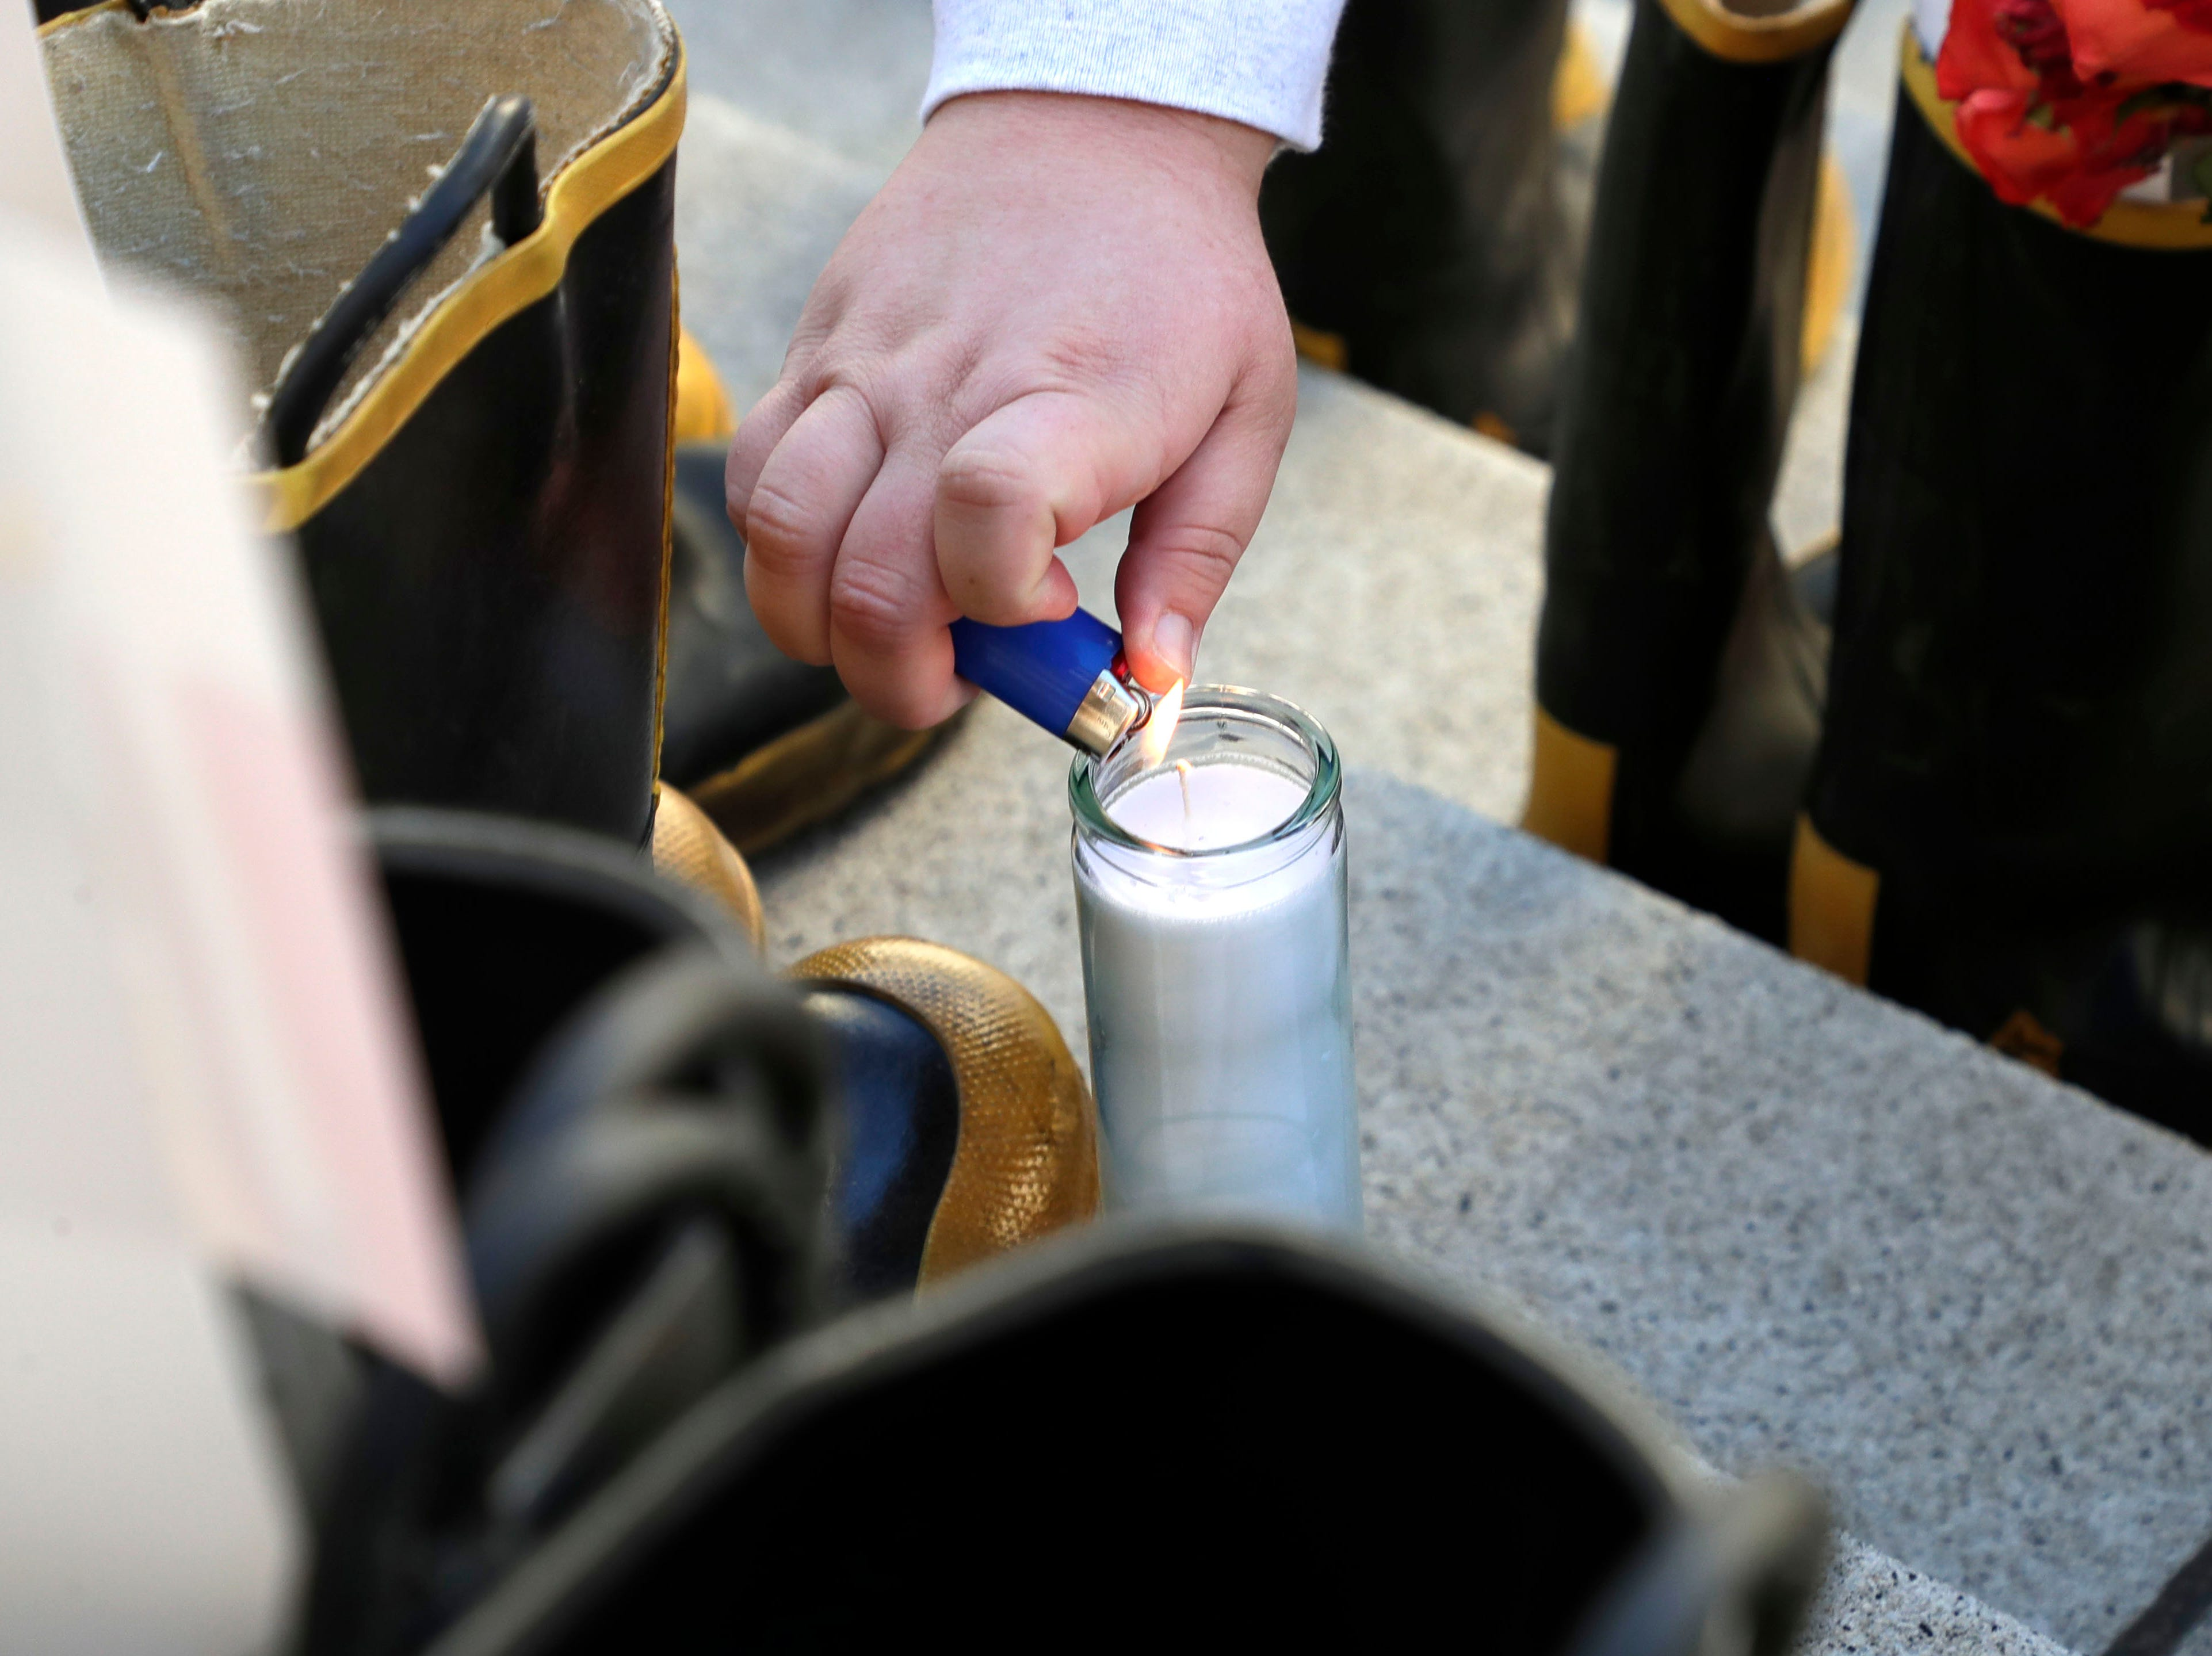 Jaclynn Cusell, a firefighter with Palm Beach County Fire Department, lights a candle to honor her father, Henry Cusell who battled Non-Hodgkins lymphoma. Firefighters and their families from around the state create a display at the Capitol of 500 pairs of boots in honor of firefighters who lost their battle or are battling with cancer caused from smoke inhalation and carcinogens Thursday, March 7, 2019. The state of Florida is one of five states in the country that does not have a bill acknowledging cancer is a job-related illness.